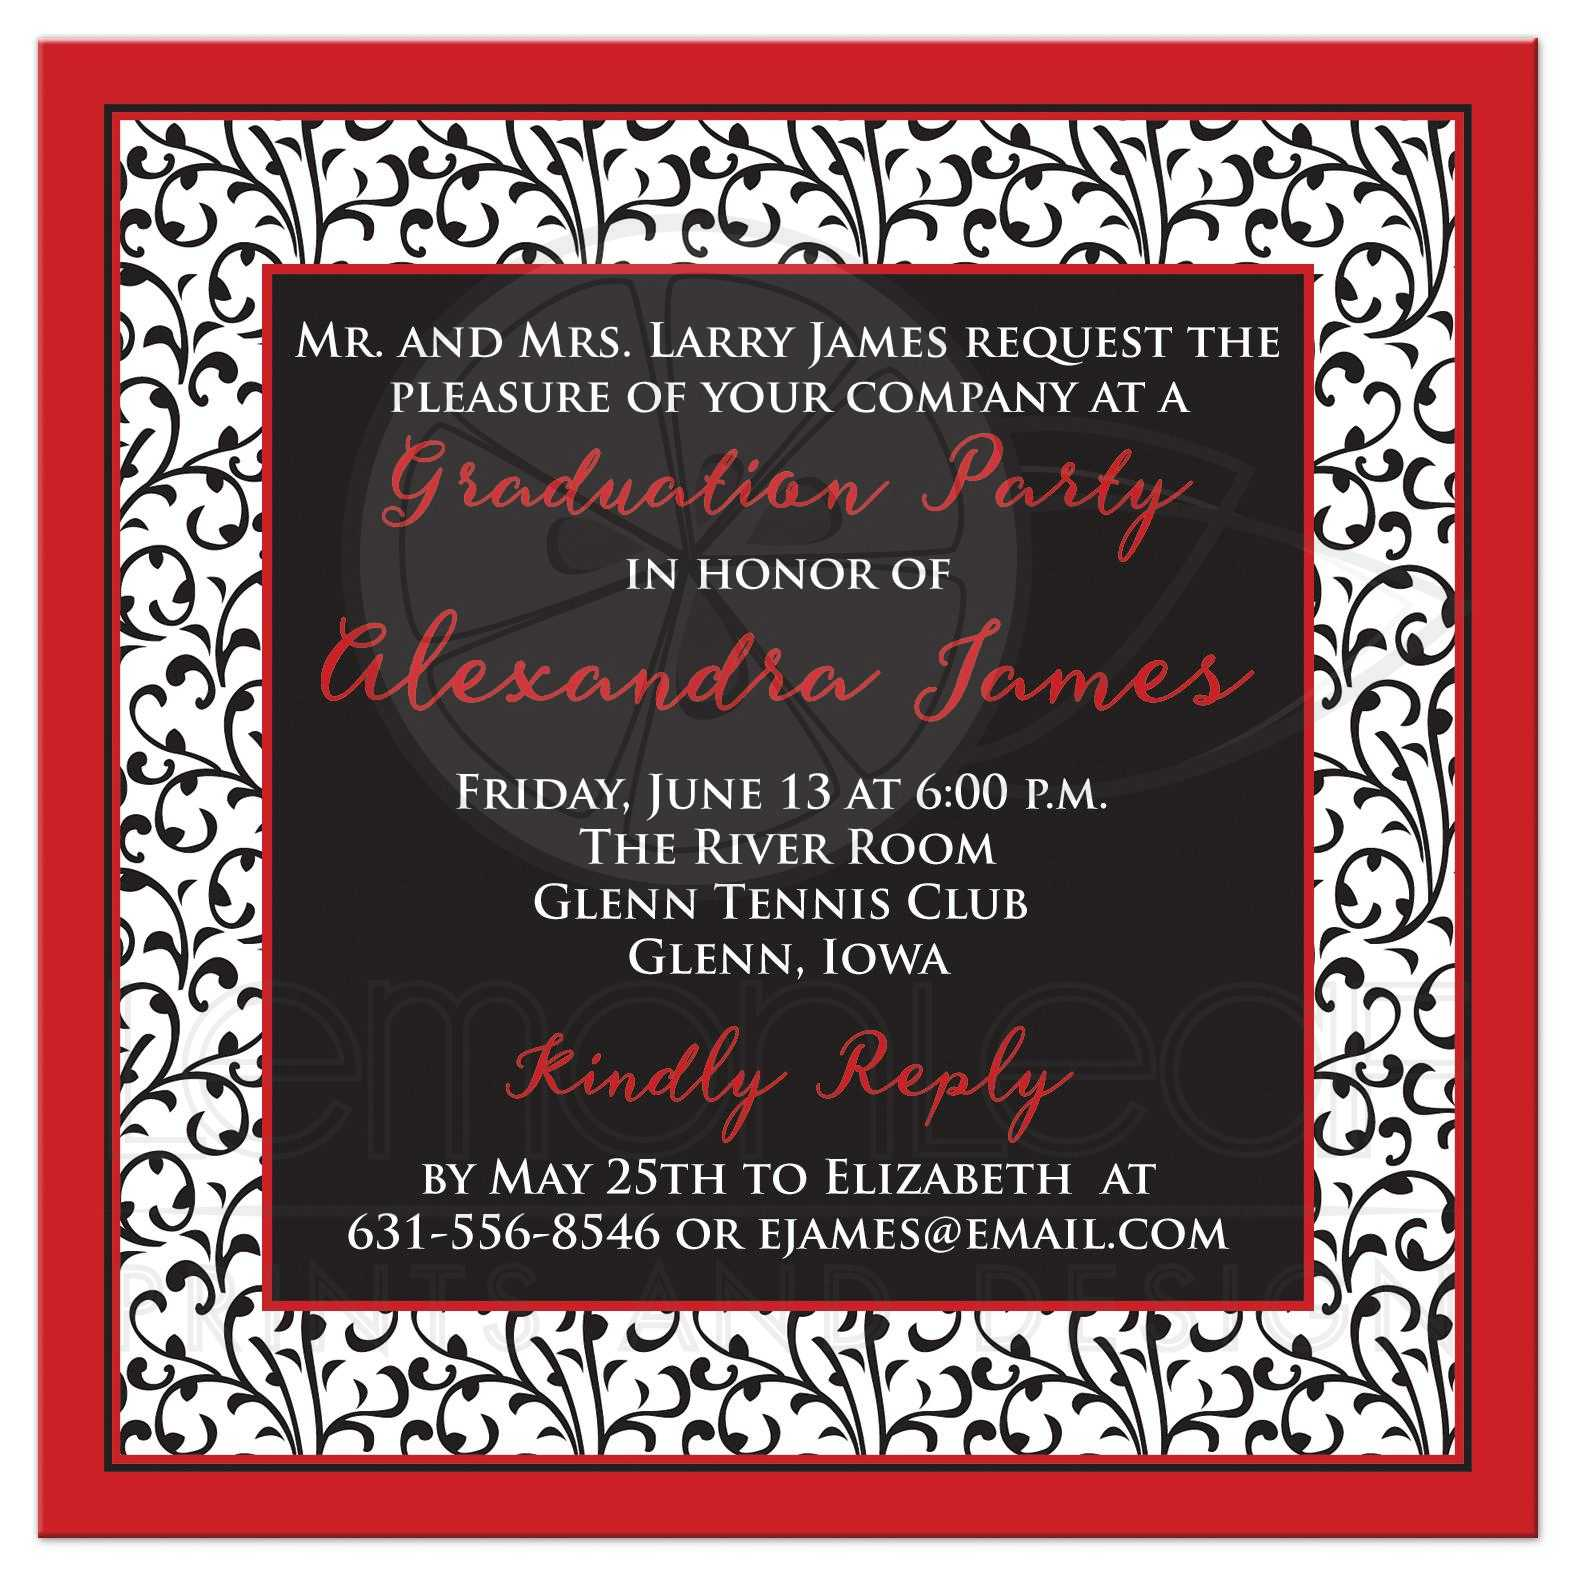 Photo graduation invitation chic red black white chic and trendy red black and white floral pattern photo graduation invitation back filmwisefo